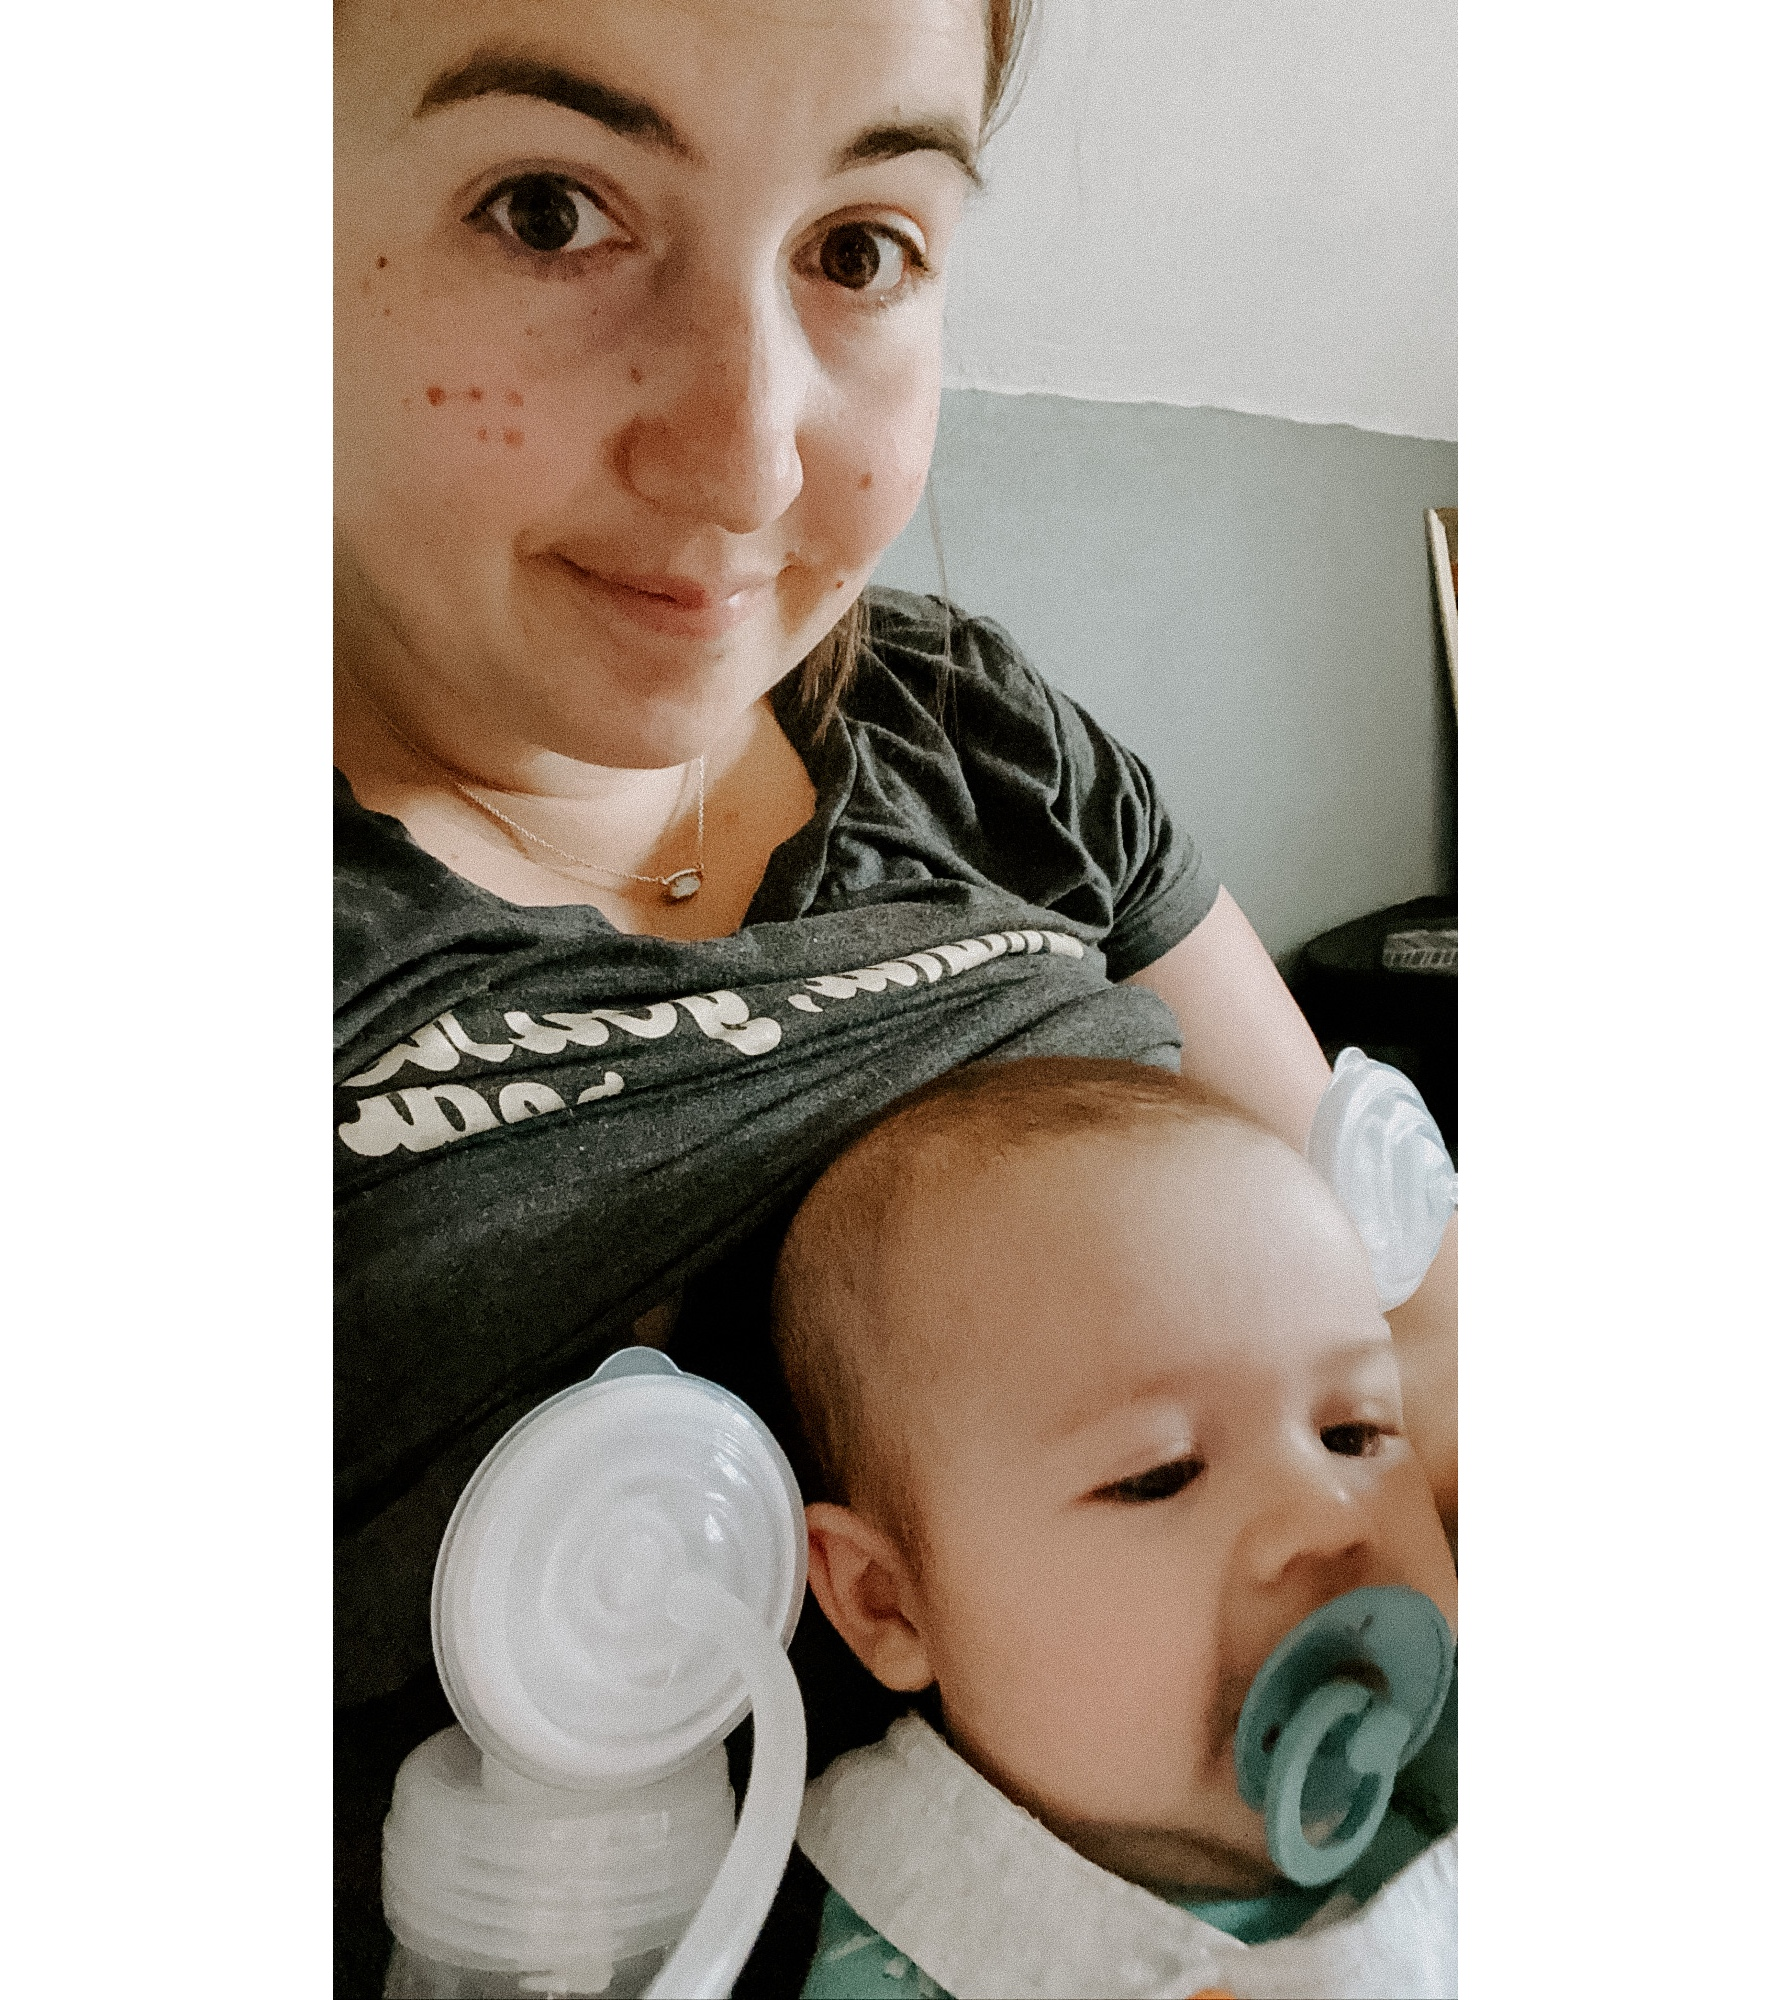 Our 17 Month Breastfeeding Journey - Home